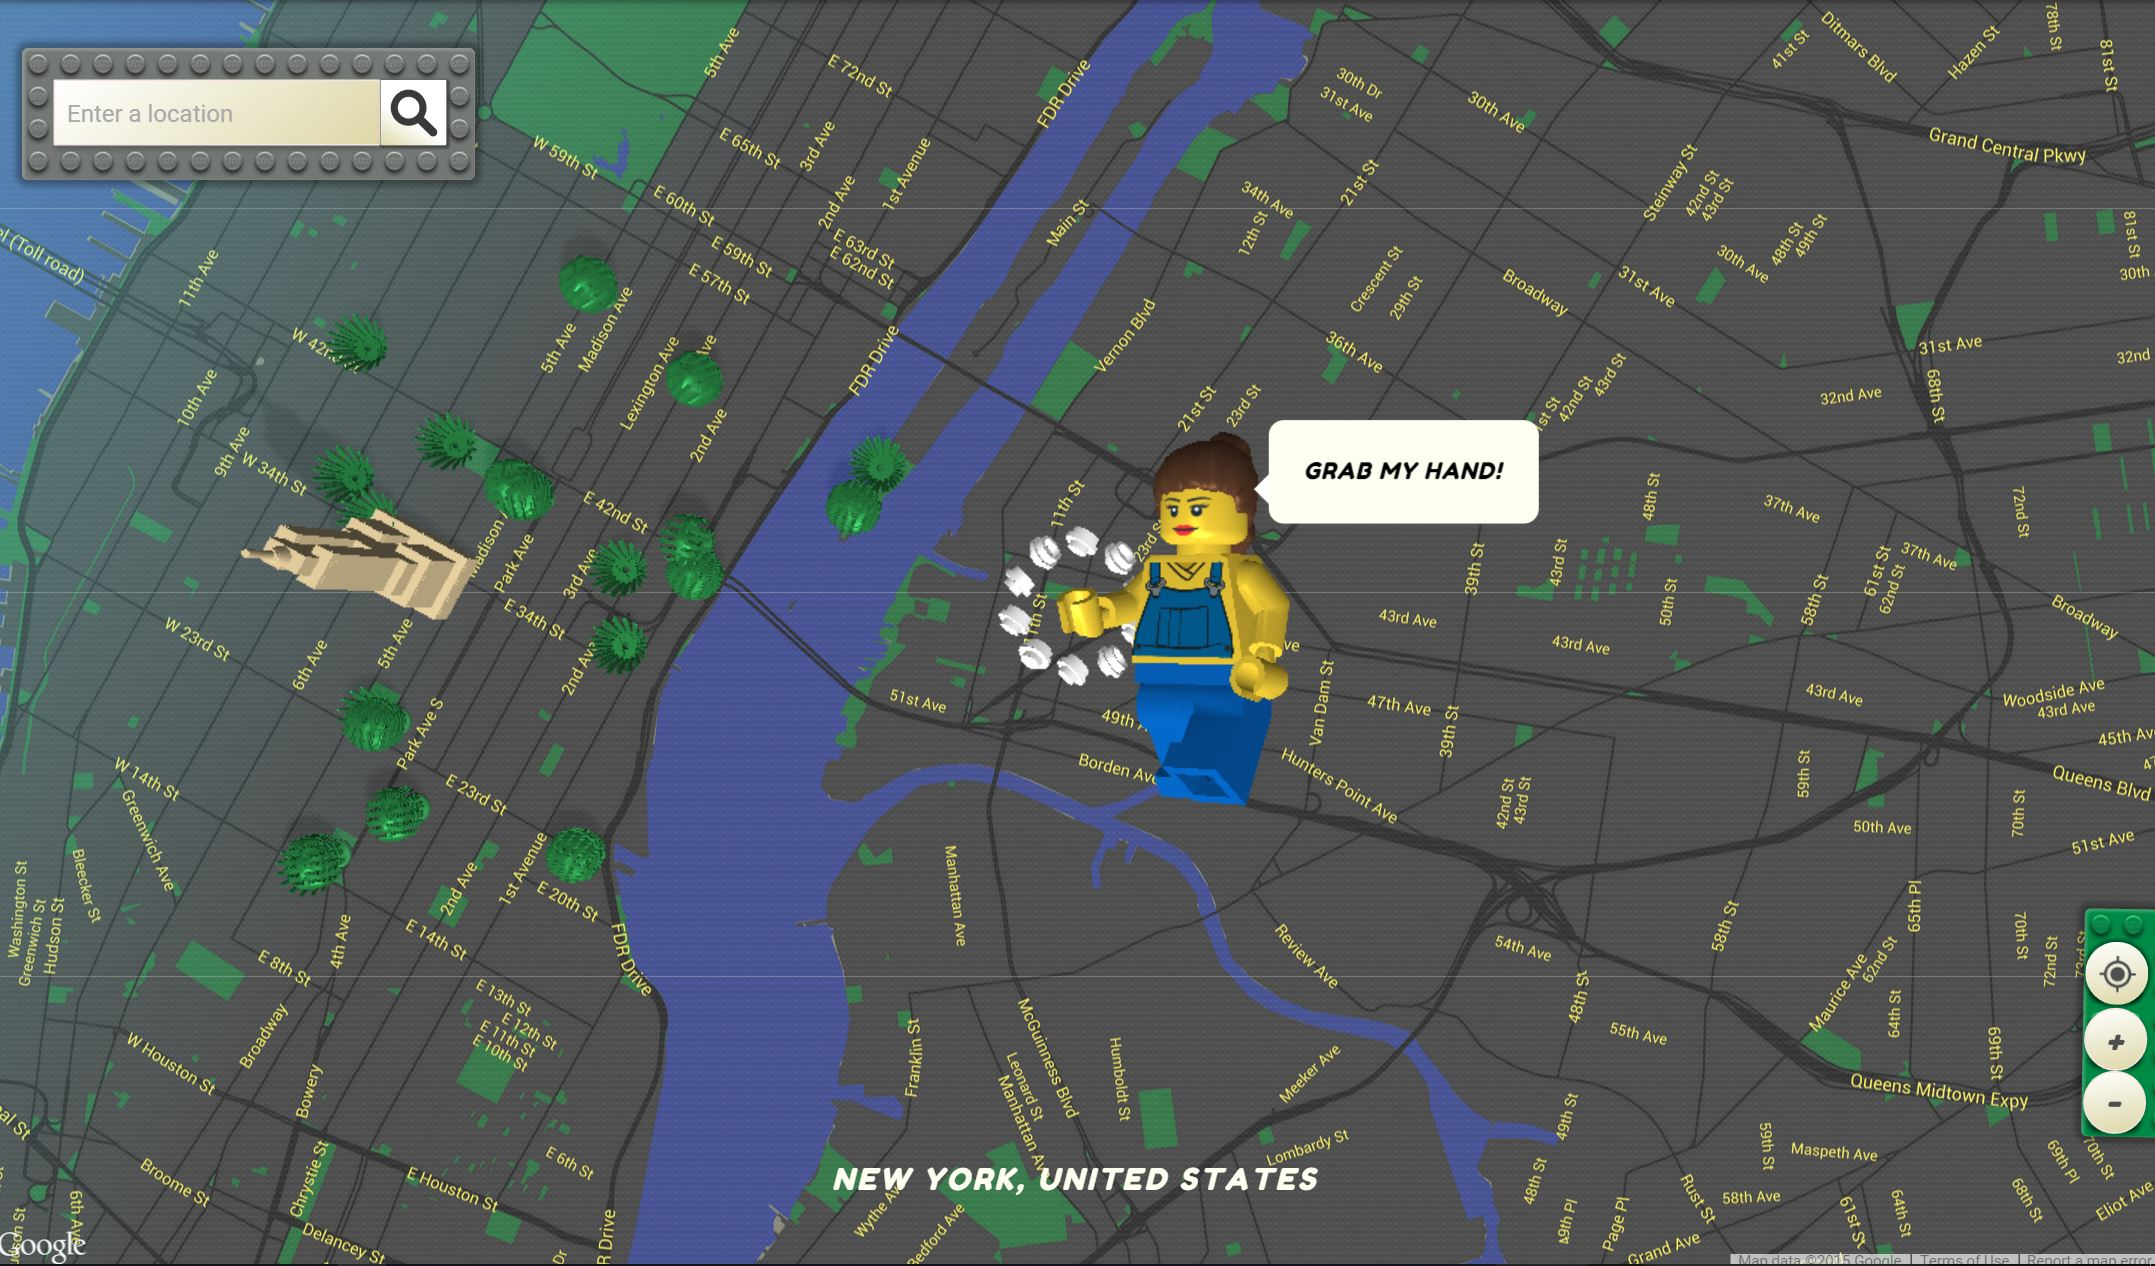 Explore all of Google Maps in Lego form with this Web app